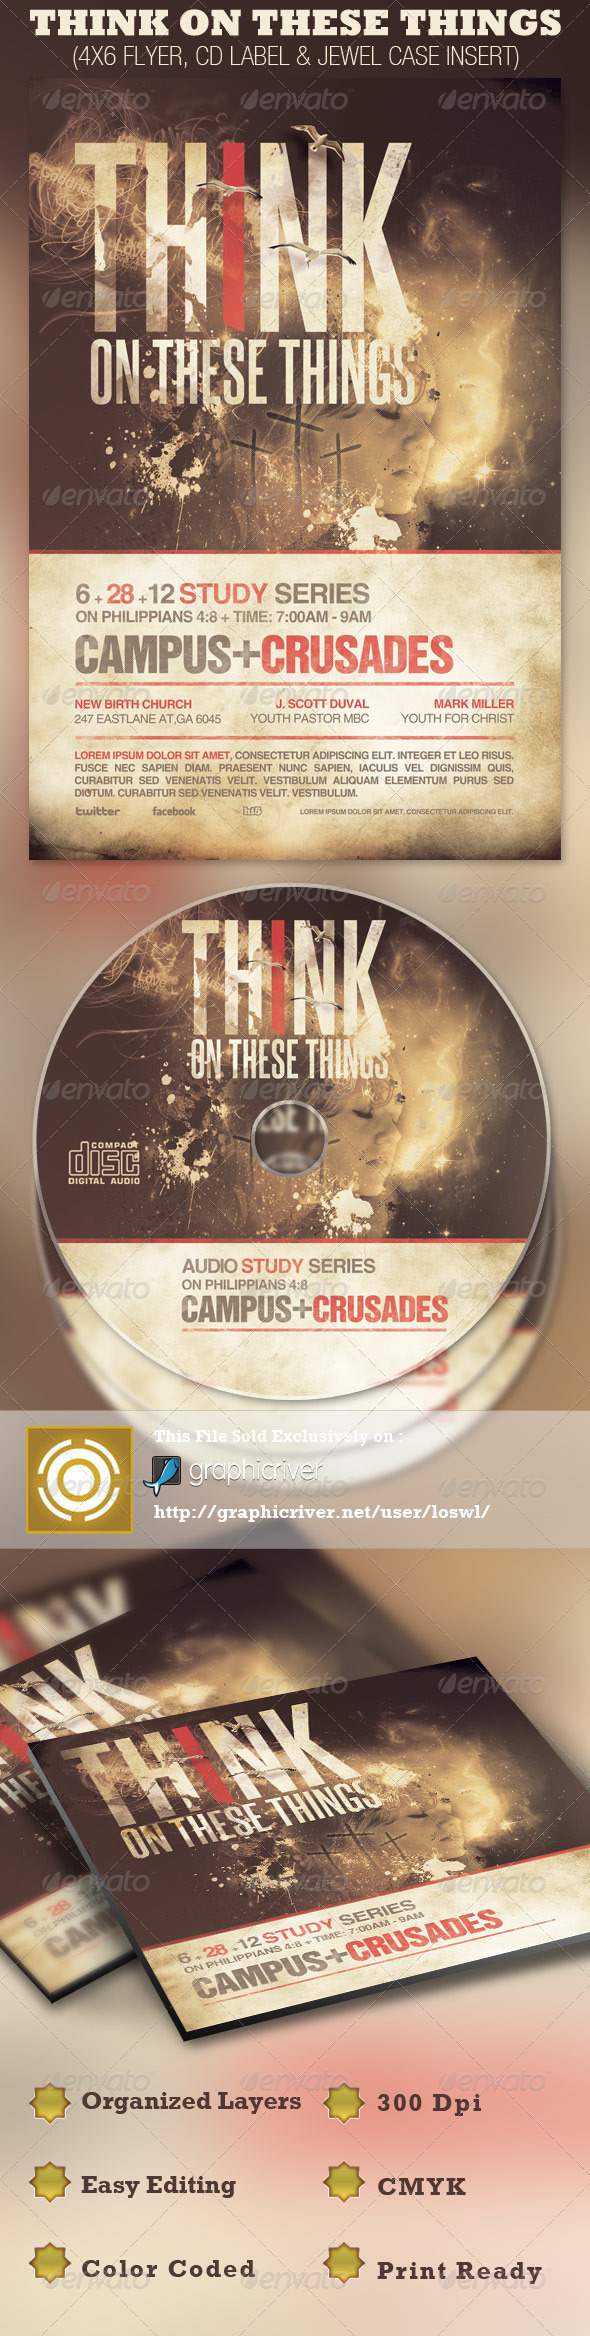 Think on These Things Church Flyer and CD Template - Church Flyers